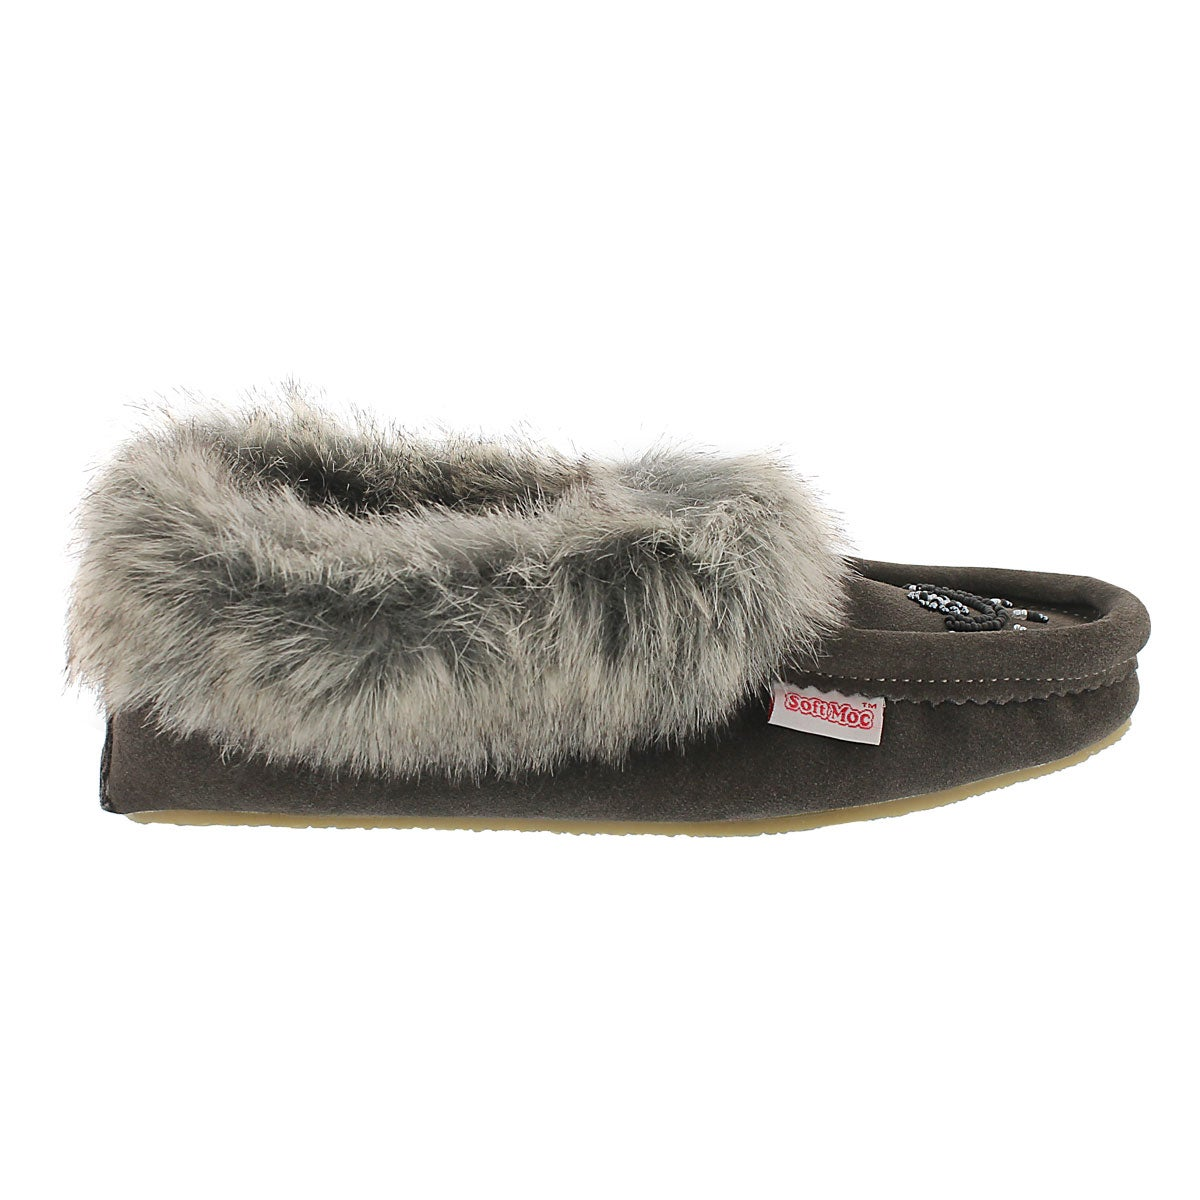 Lds Cute faux me grey crepe sole faux